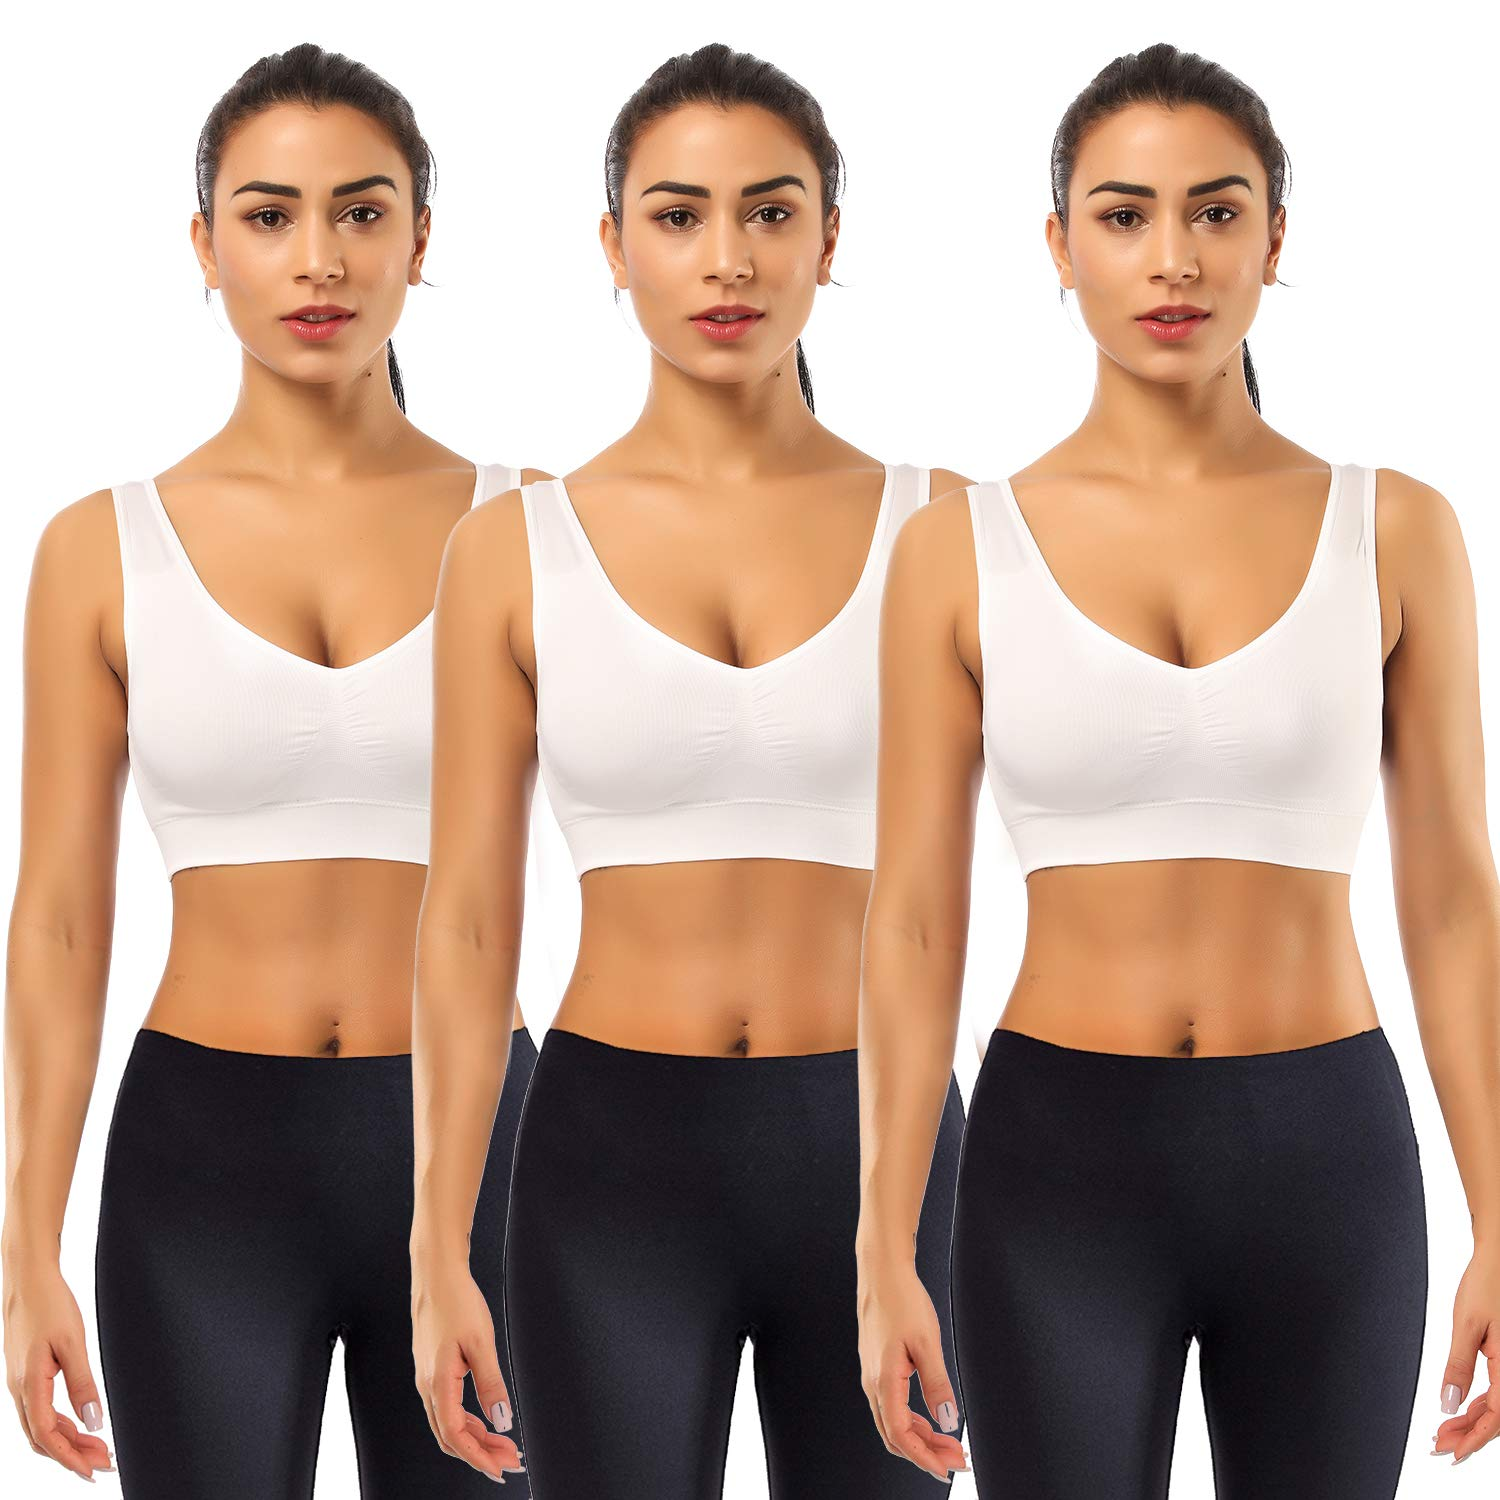 BESTENA Sports Bras for Women, 3 Pack Seamless Comfortable Yoga Bra with Removable Pads(White,XXXX-Large) by BESTENA